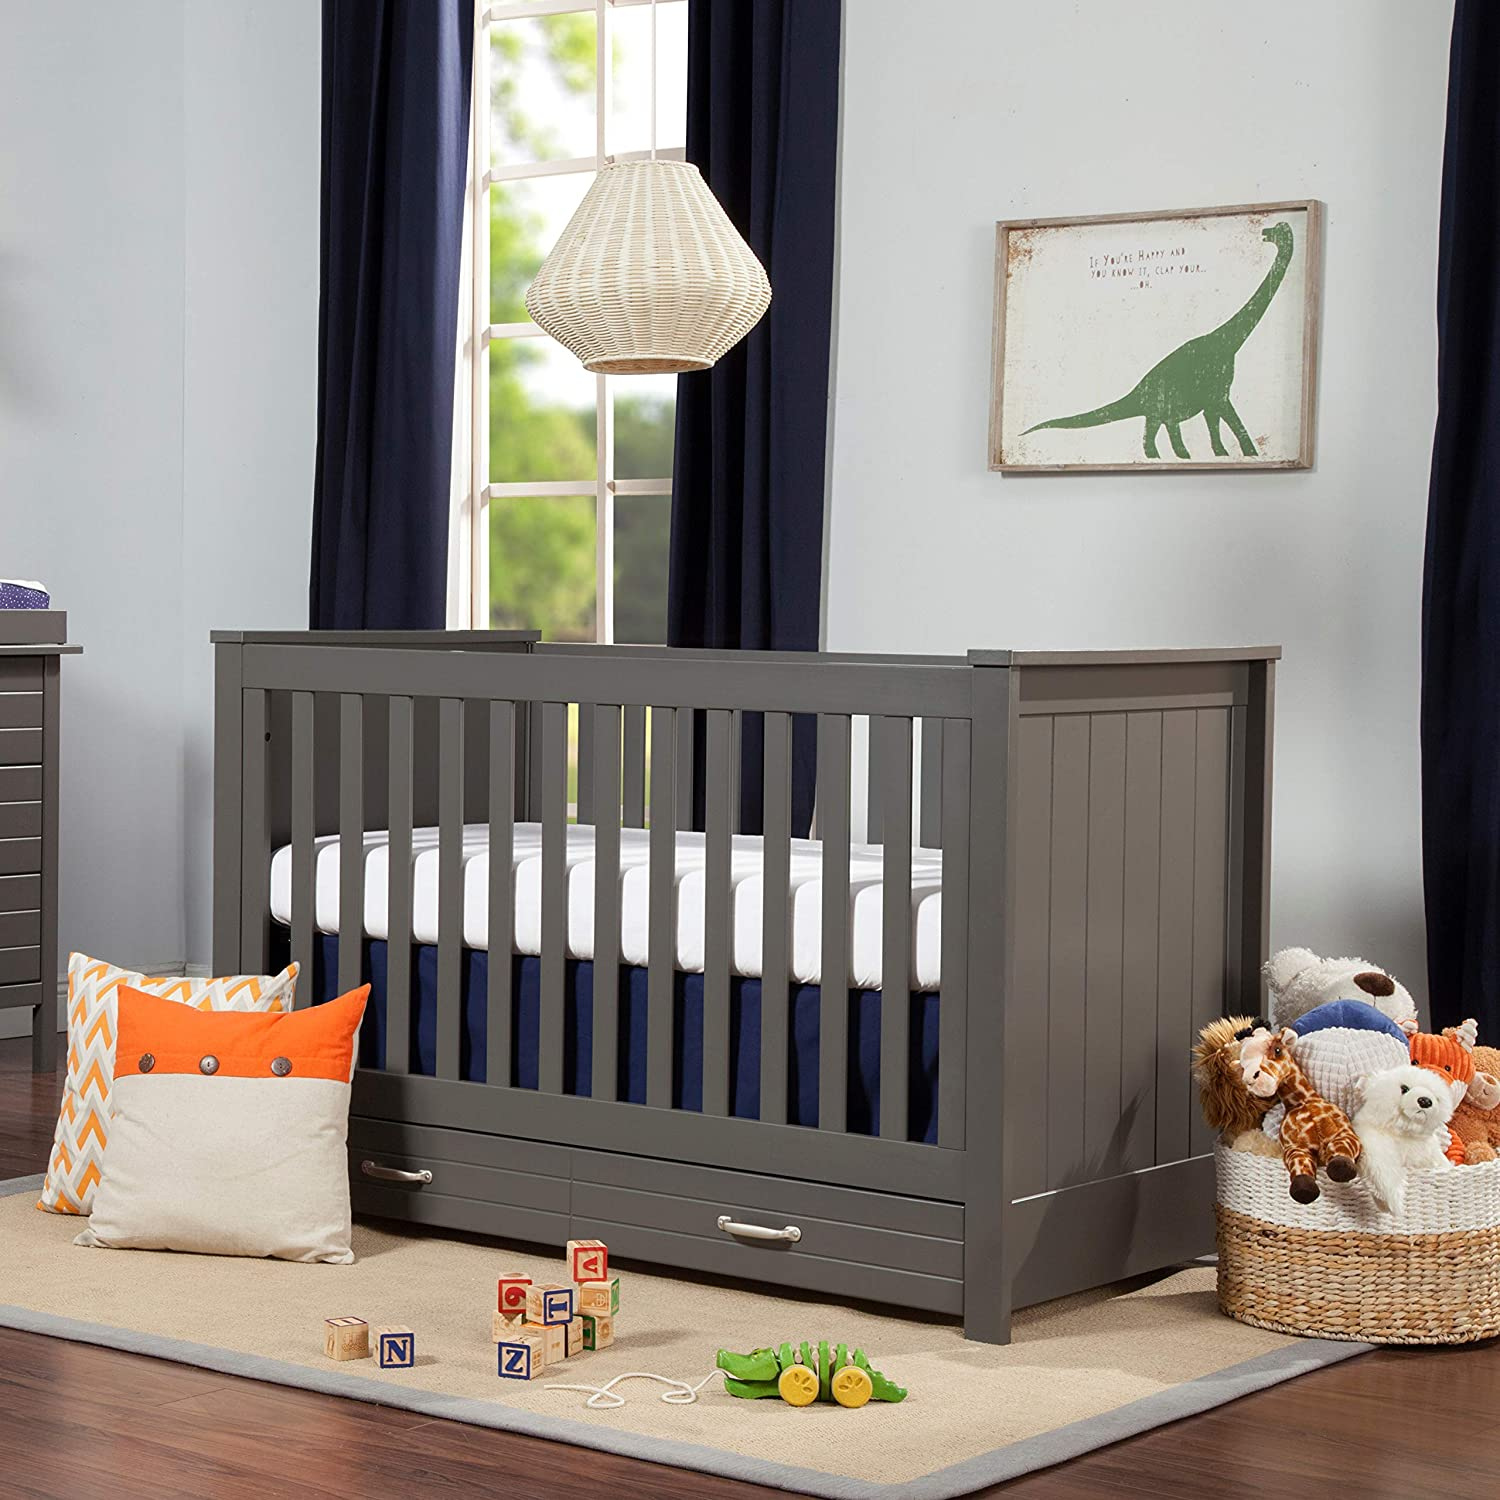 Crib DaVinci Asher 3-in-1 Convertible Crib with Toddler Bed Conversion Kit in Slate Two Beds